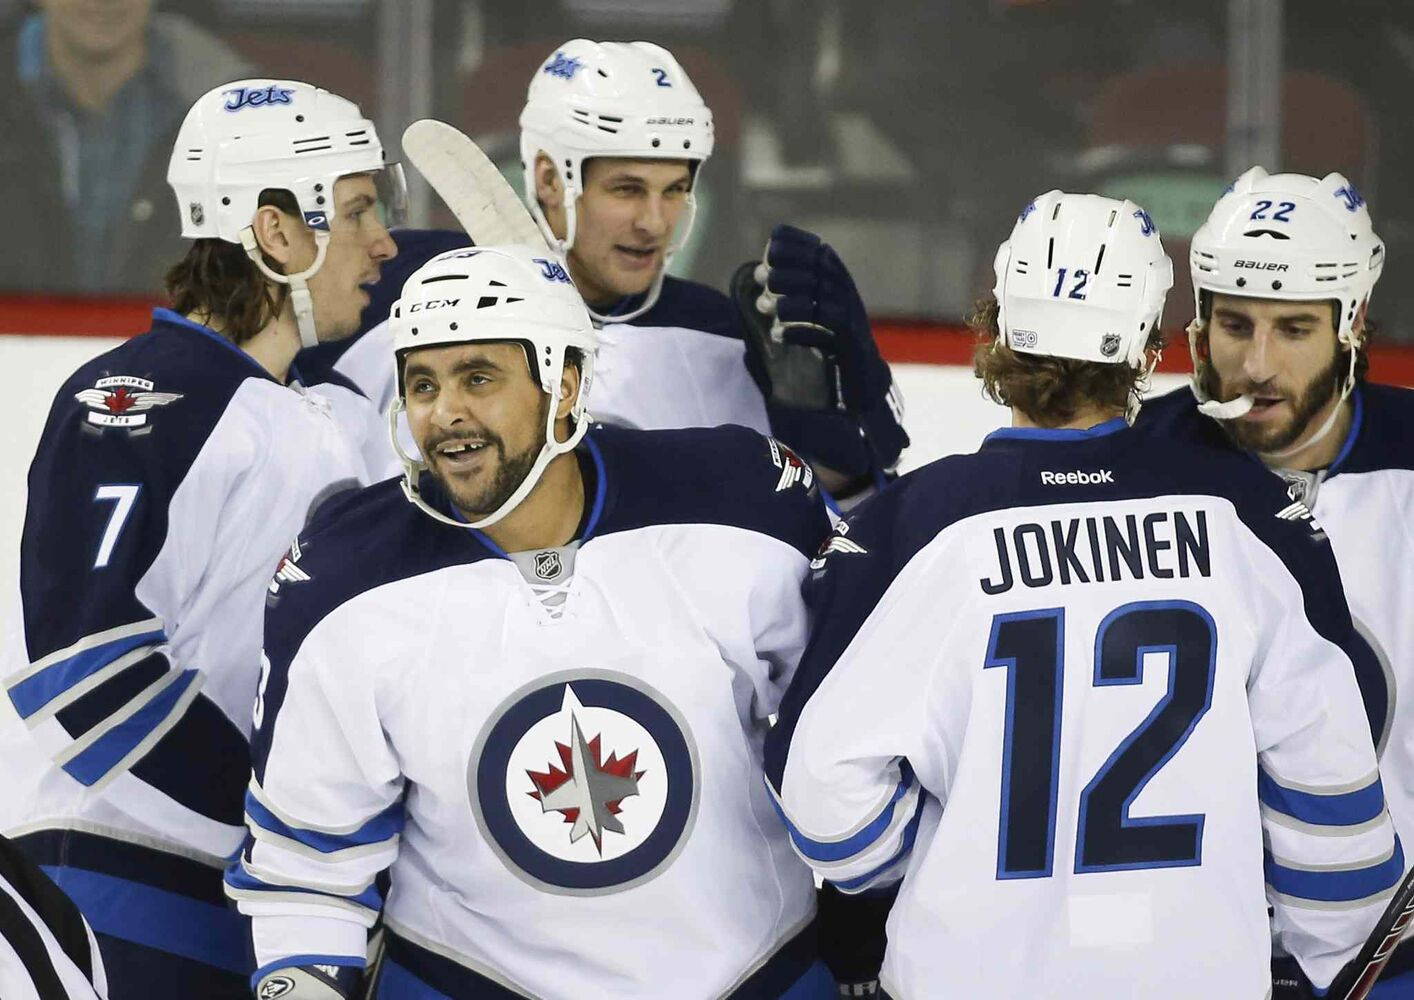 Winnipeg Jets' Dustin Byfuglien, second from left, celebrates his goal with teammates during the first period against the Calgary Flames in Calgary.